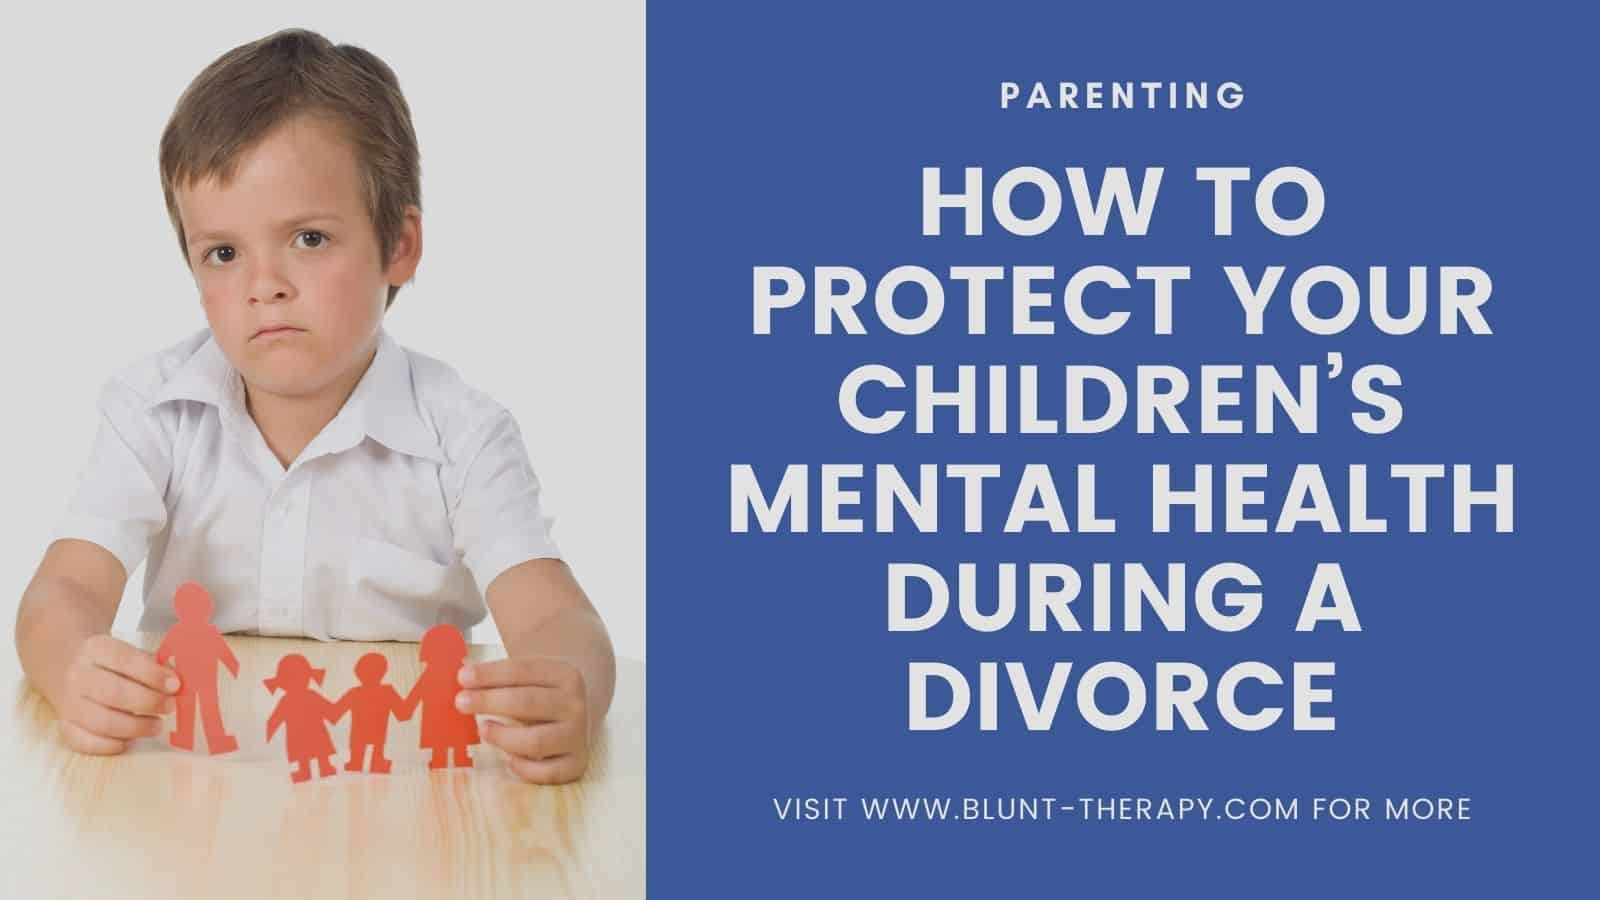 protect the mental health of children during divorce